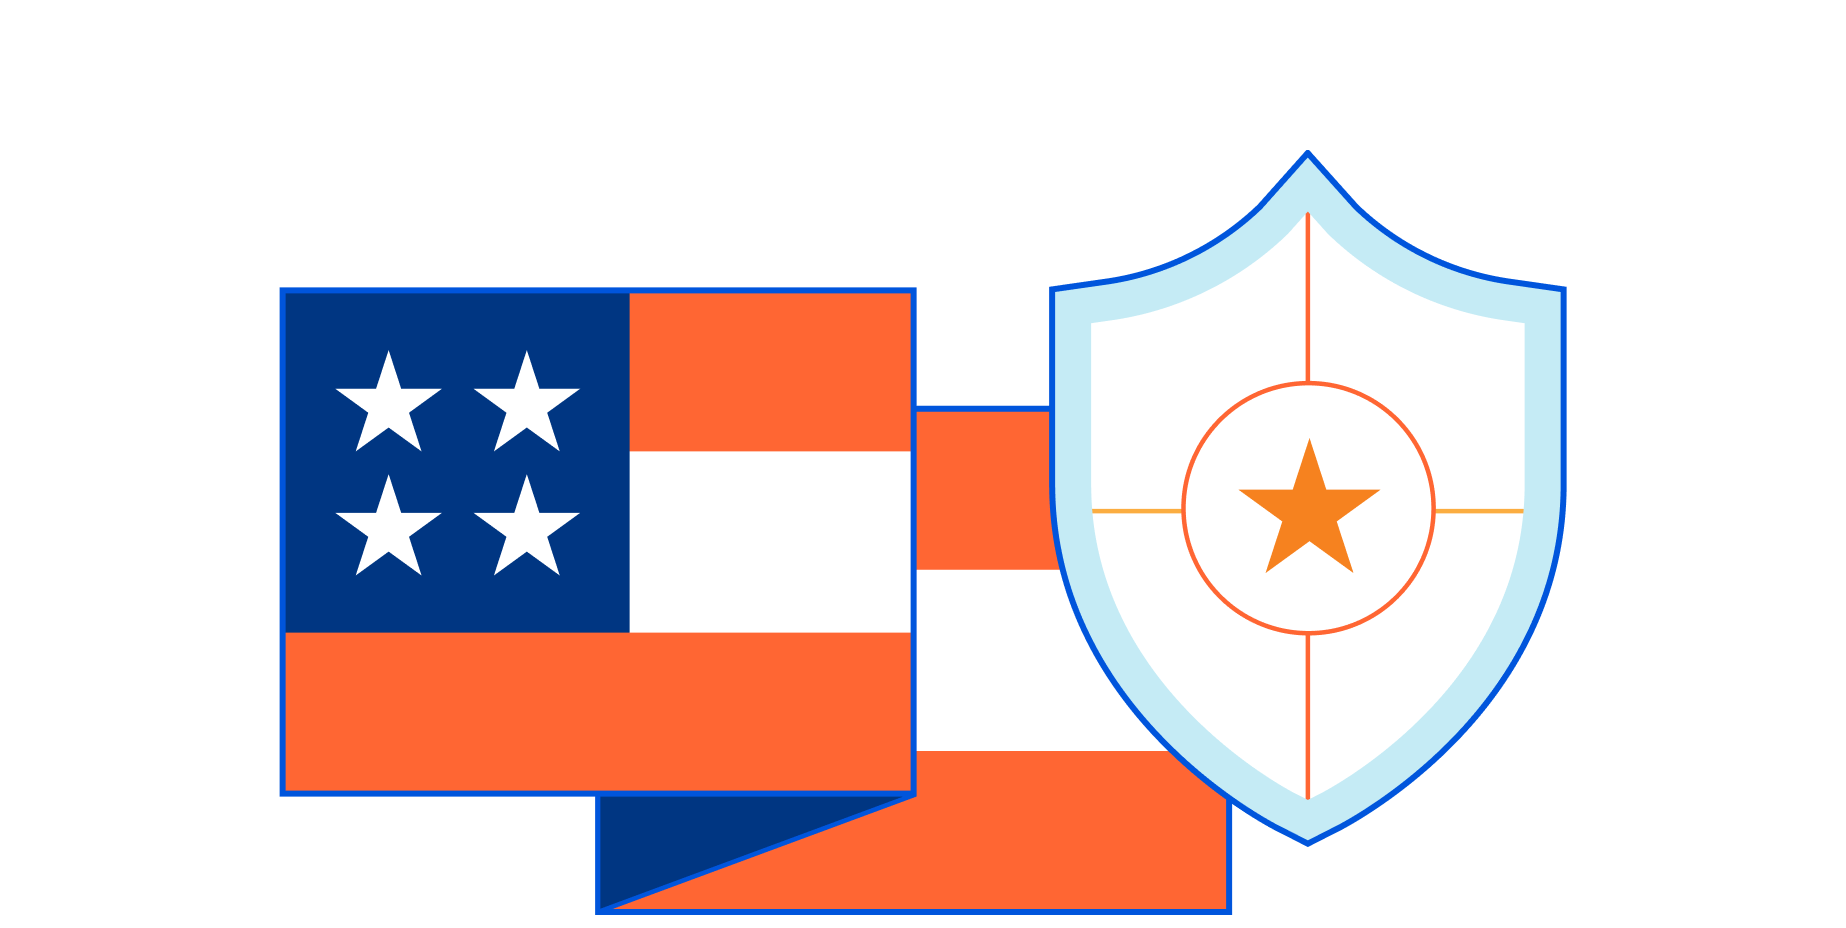 Cloudflare and Accenture Federal Services (AFS) have been selected to deliver a joint solution to help the United States Government defend against cybersecurity attacks.